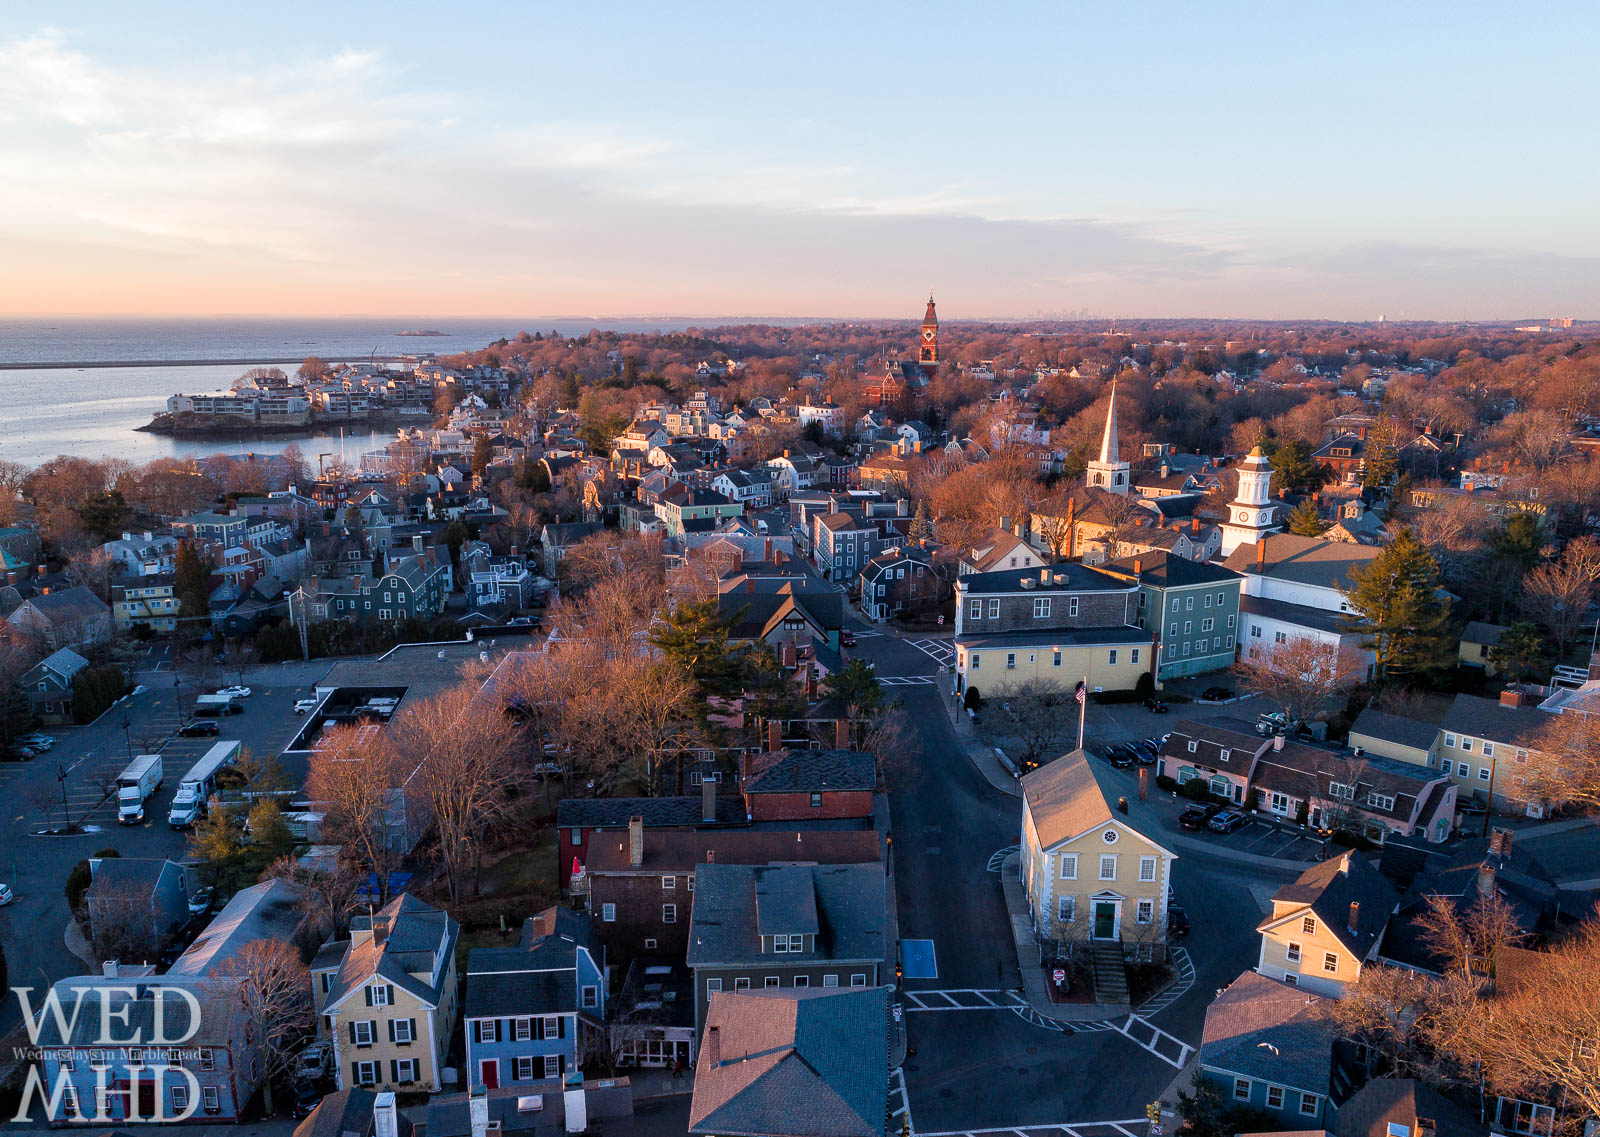 The warm glow of the morning sun bathes Washington Street as seen from 100 feet above the town of Marblehead